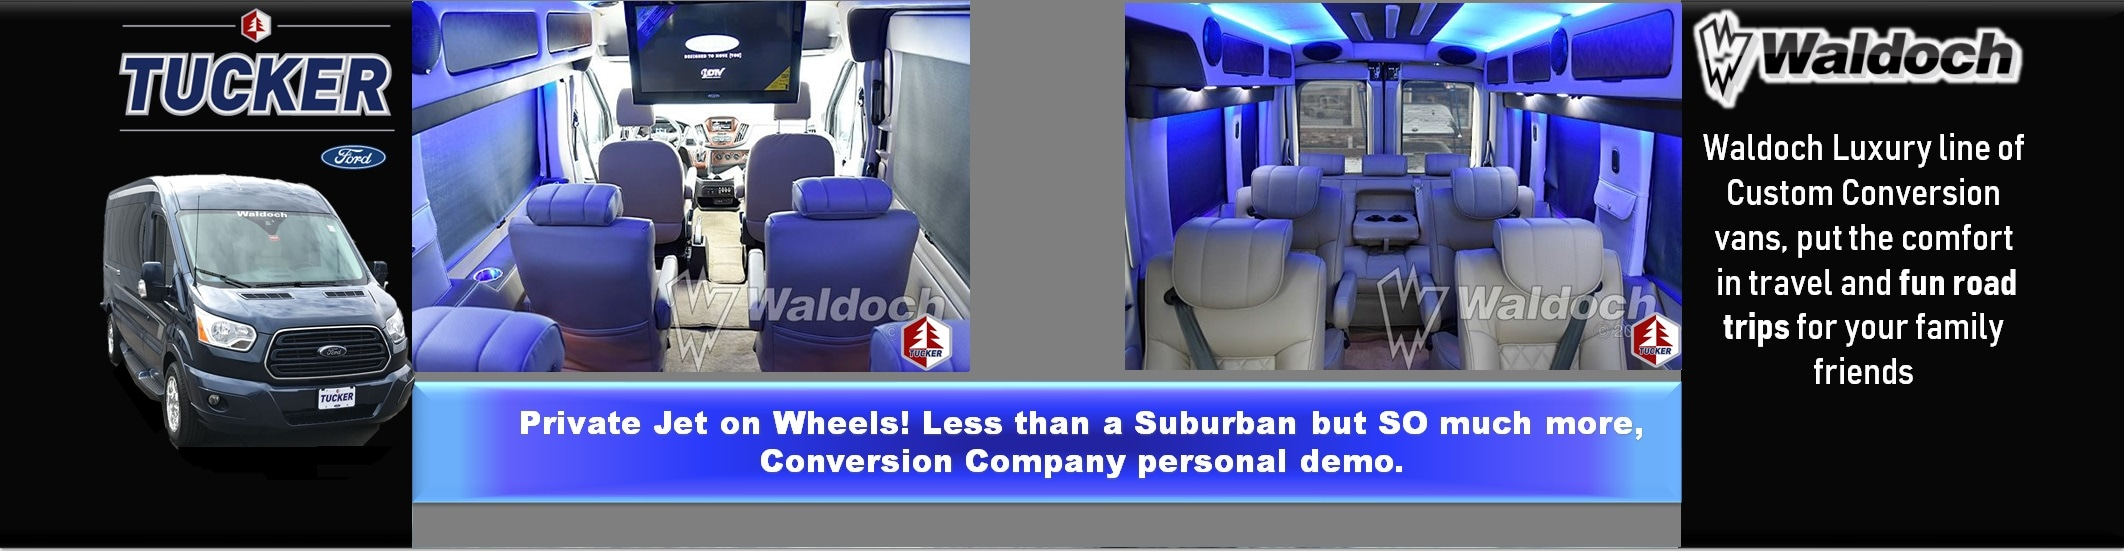 Subaru Dealers In Maine >> Tucker Ford   New & Used Ford Dealership in Brunswick, ME